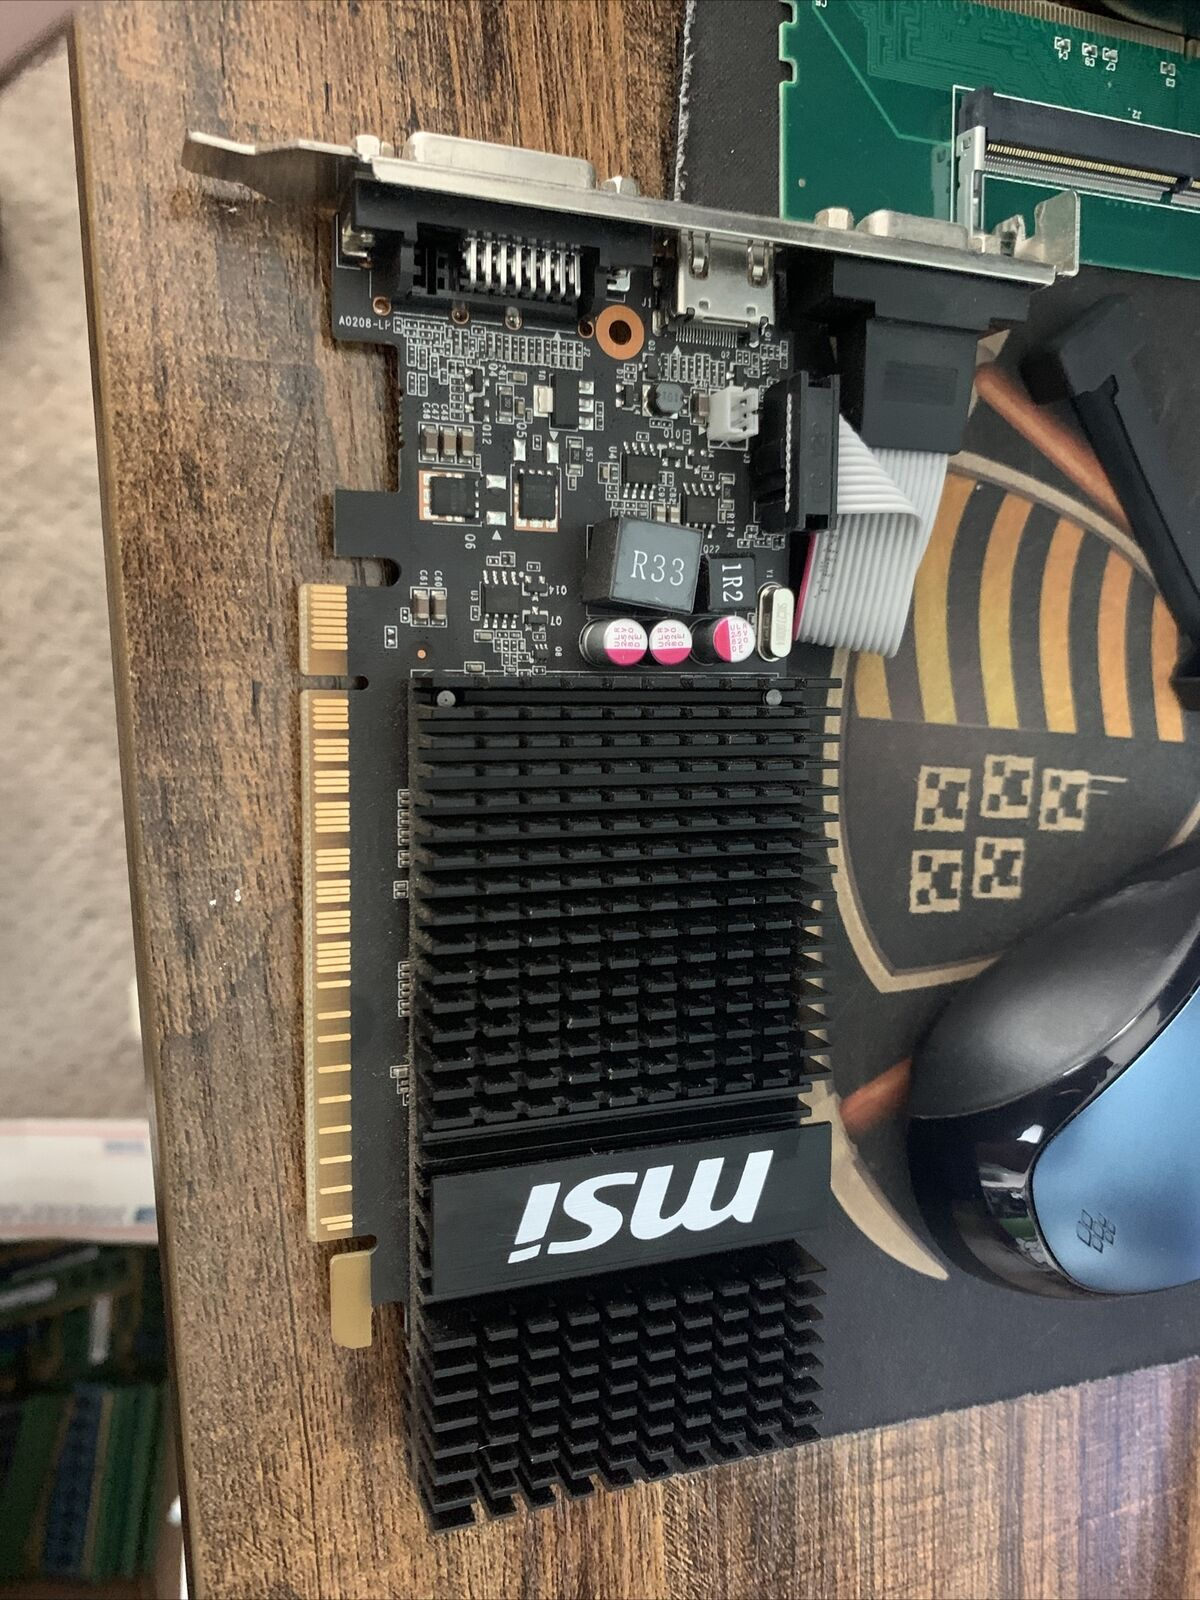 *MSI N720-1GD3HLP graphics card GeForce GT 720 1 GB GDDR3 untested working pull